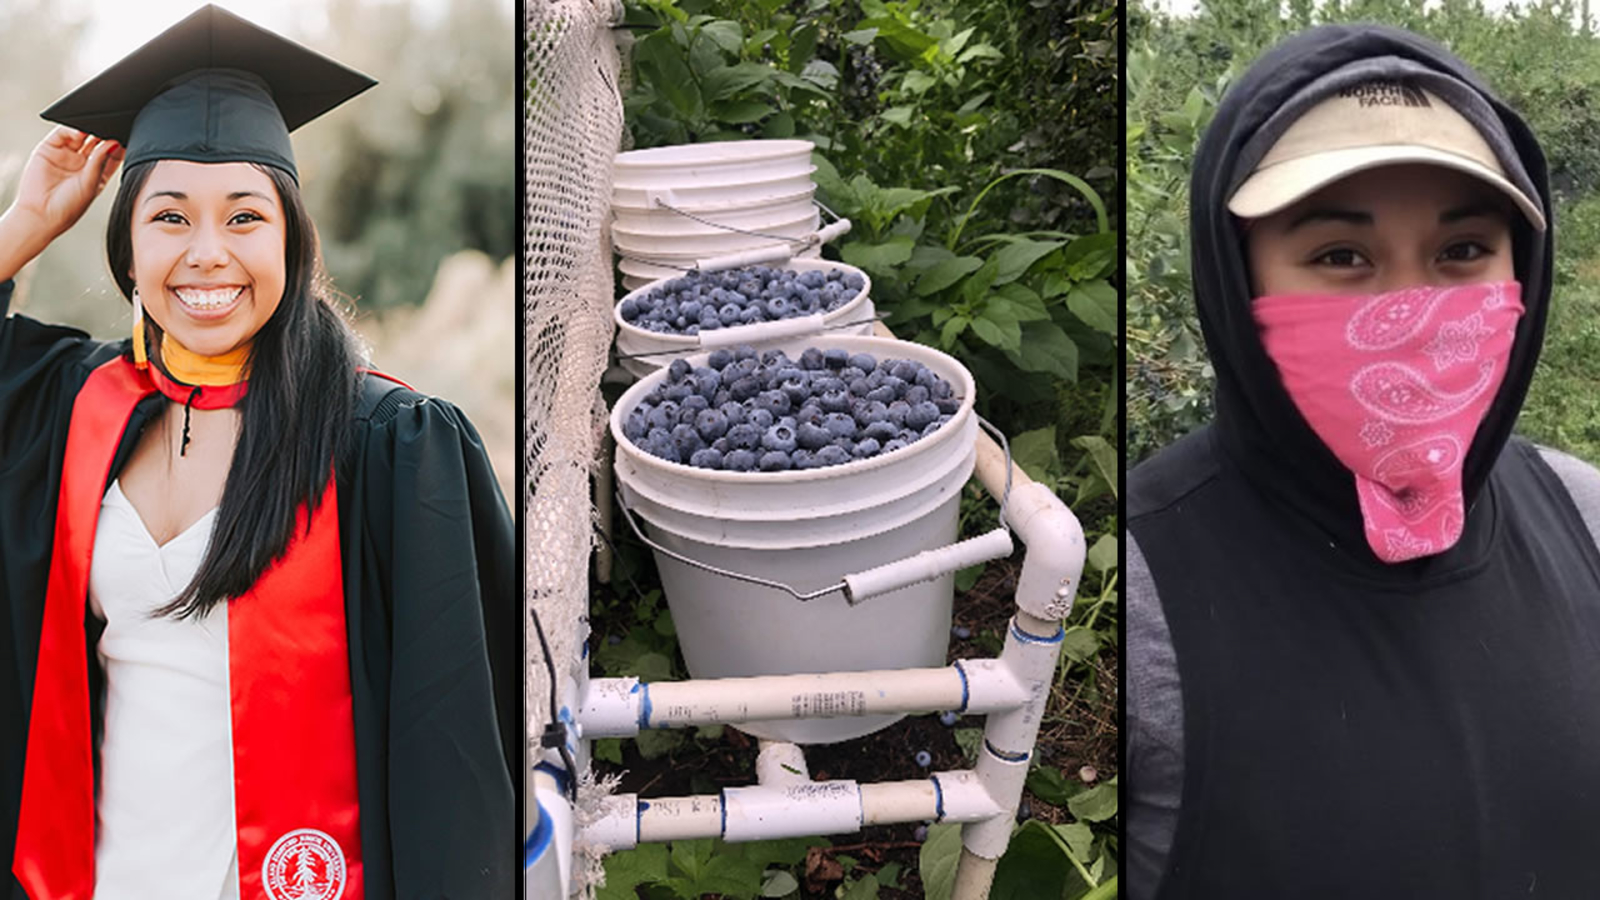 Stanford student raises awareness for farmworker wages after getting $7 for picking 2 gallons of blueberries